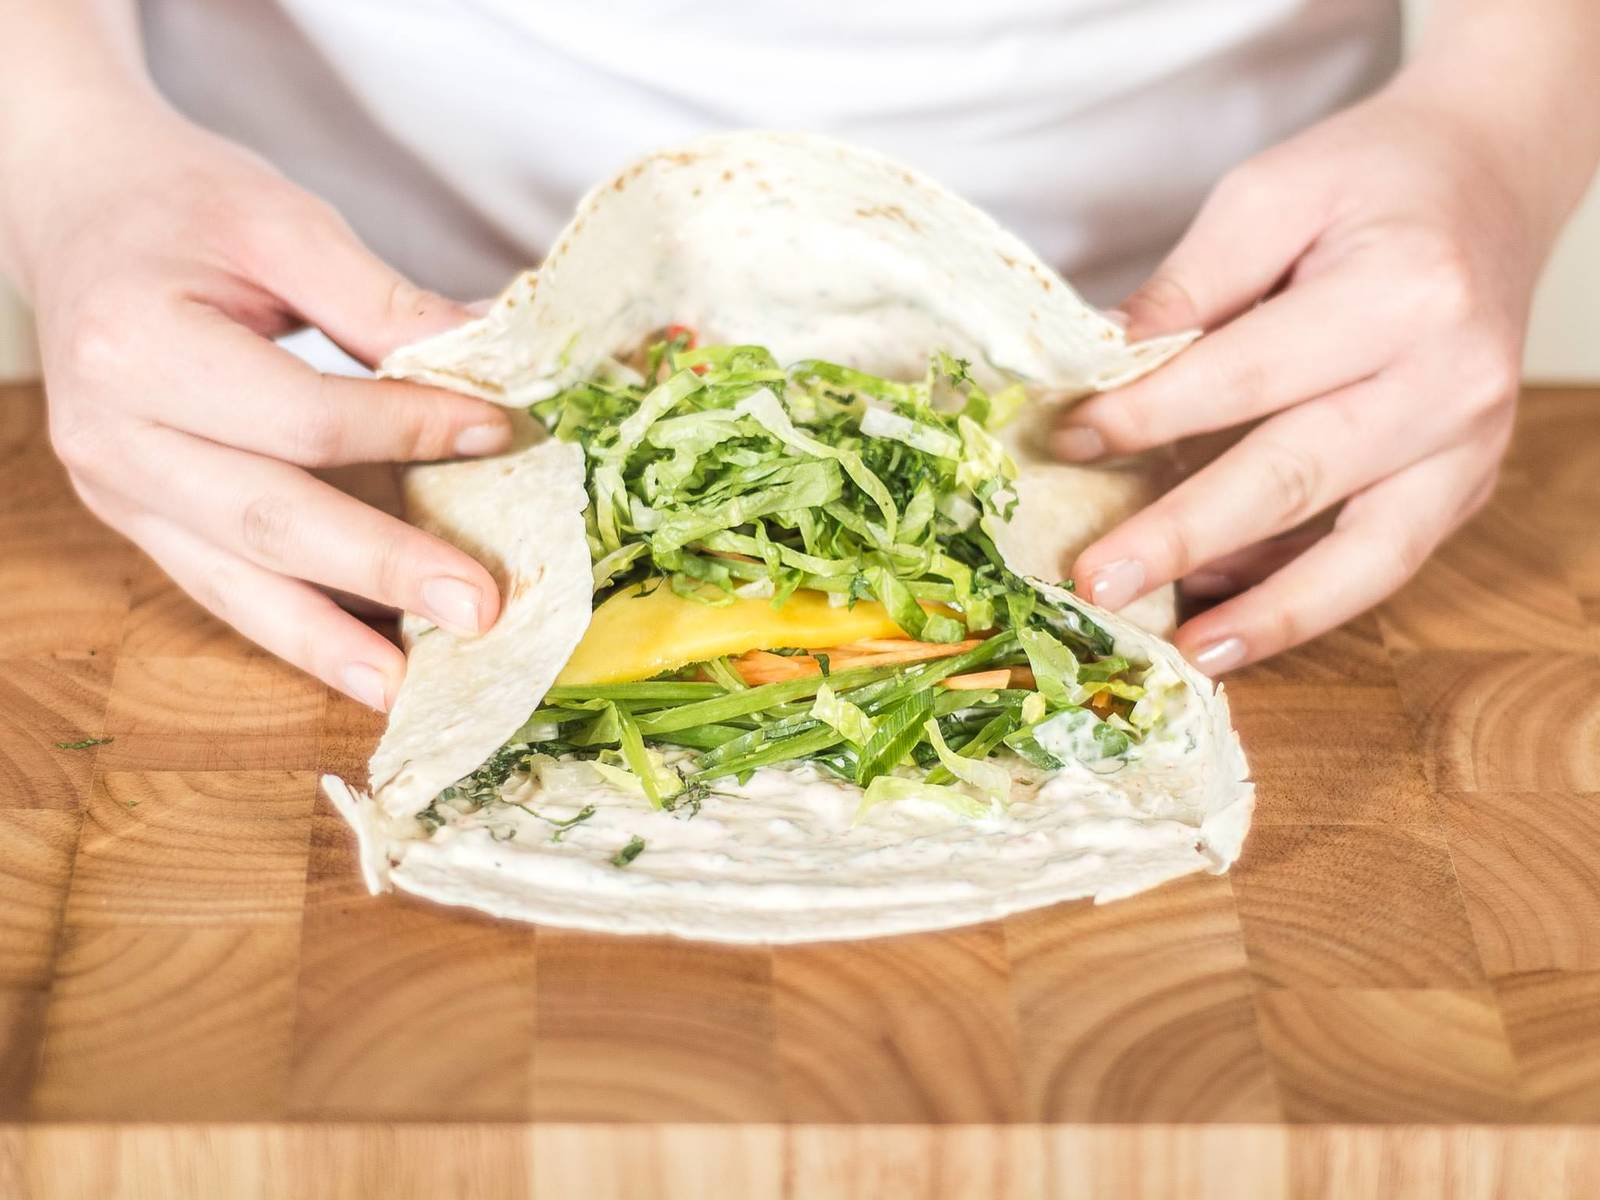 Now, roll to create a wrap. First, fold the edges up and roll as tightly as possible from the widest edge. The less air in the wrap, the easier it is to cut afterwards.